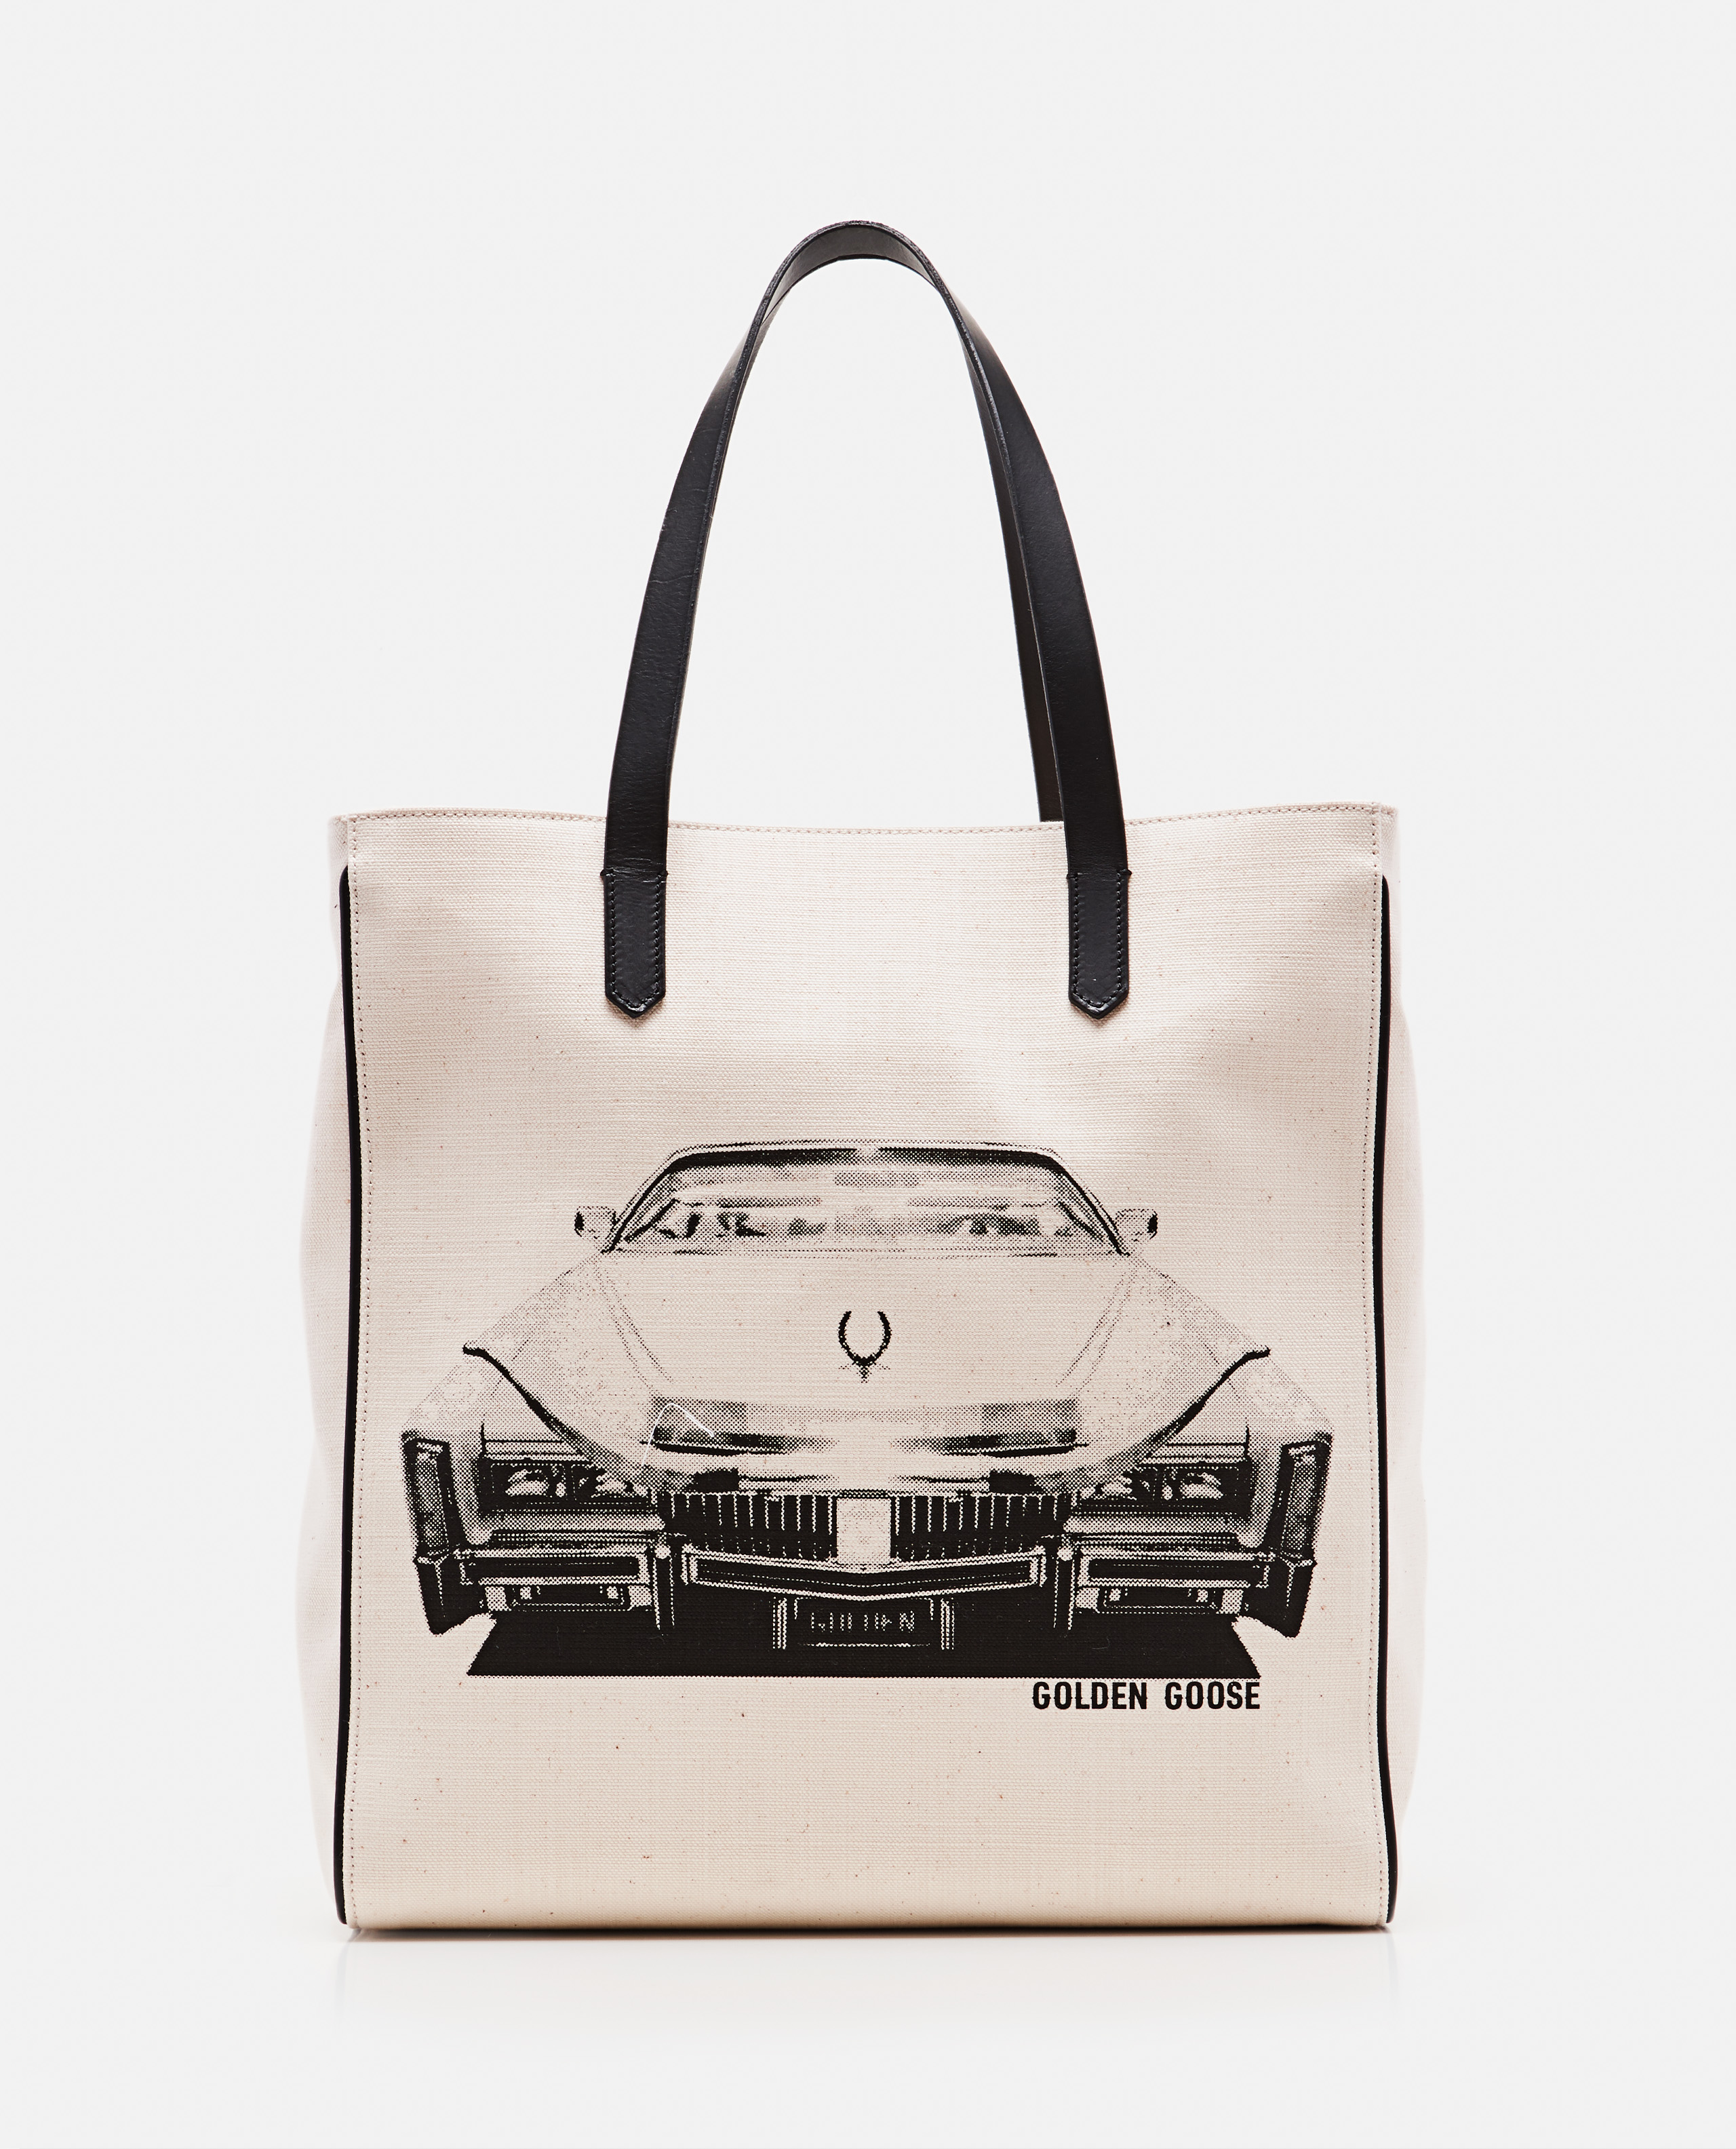 Borsa California North-South stampa Cadillac